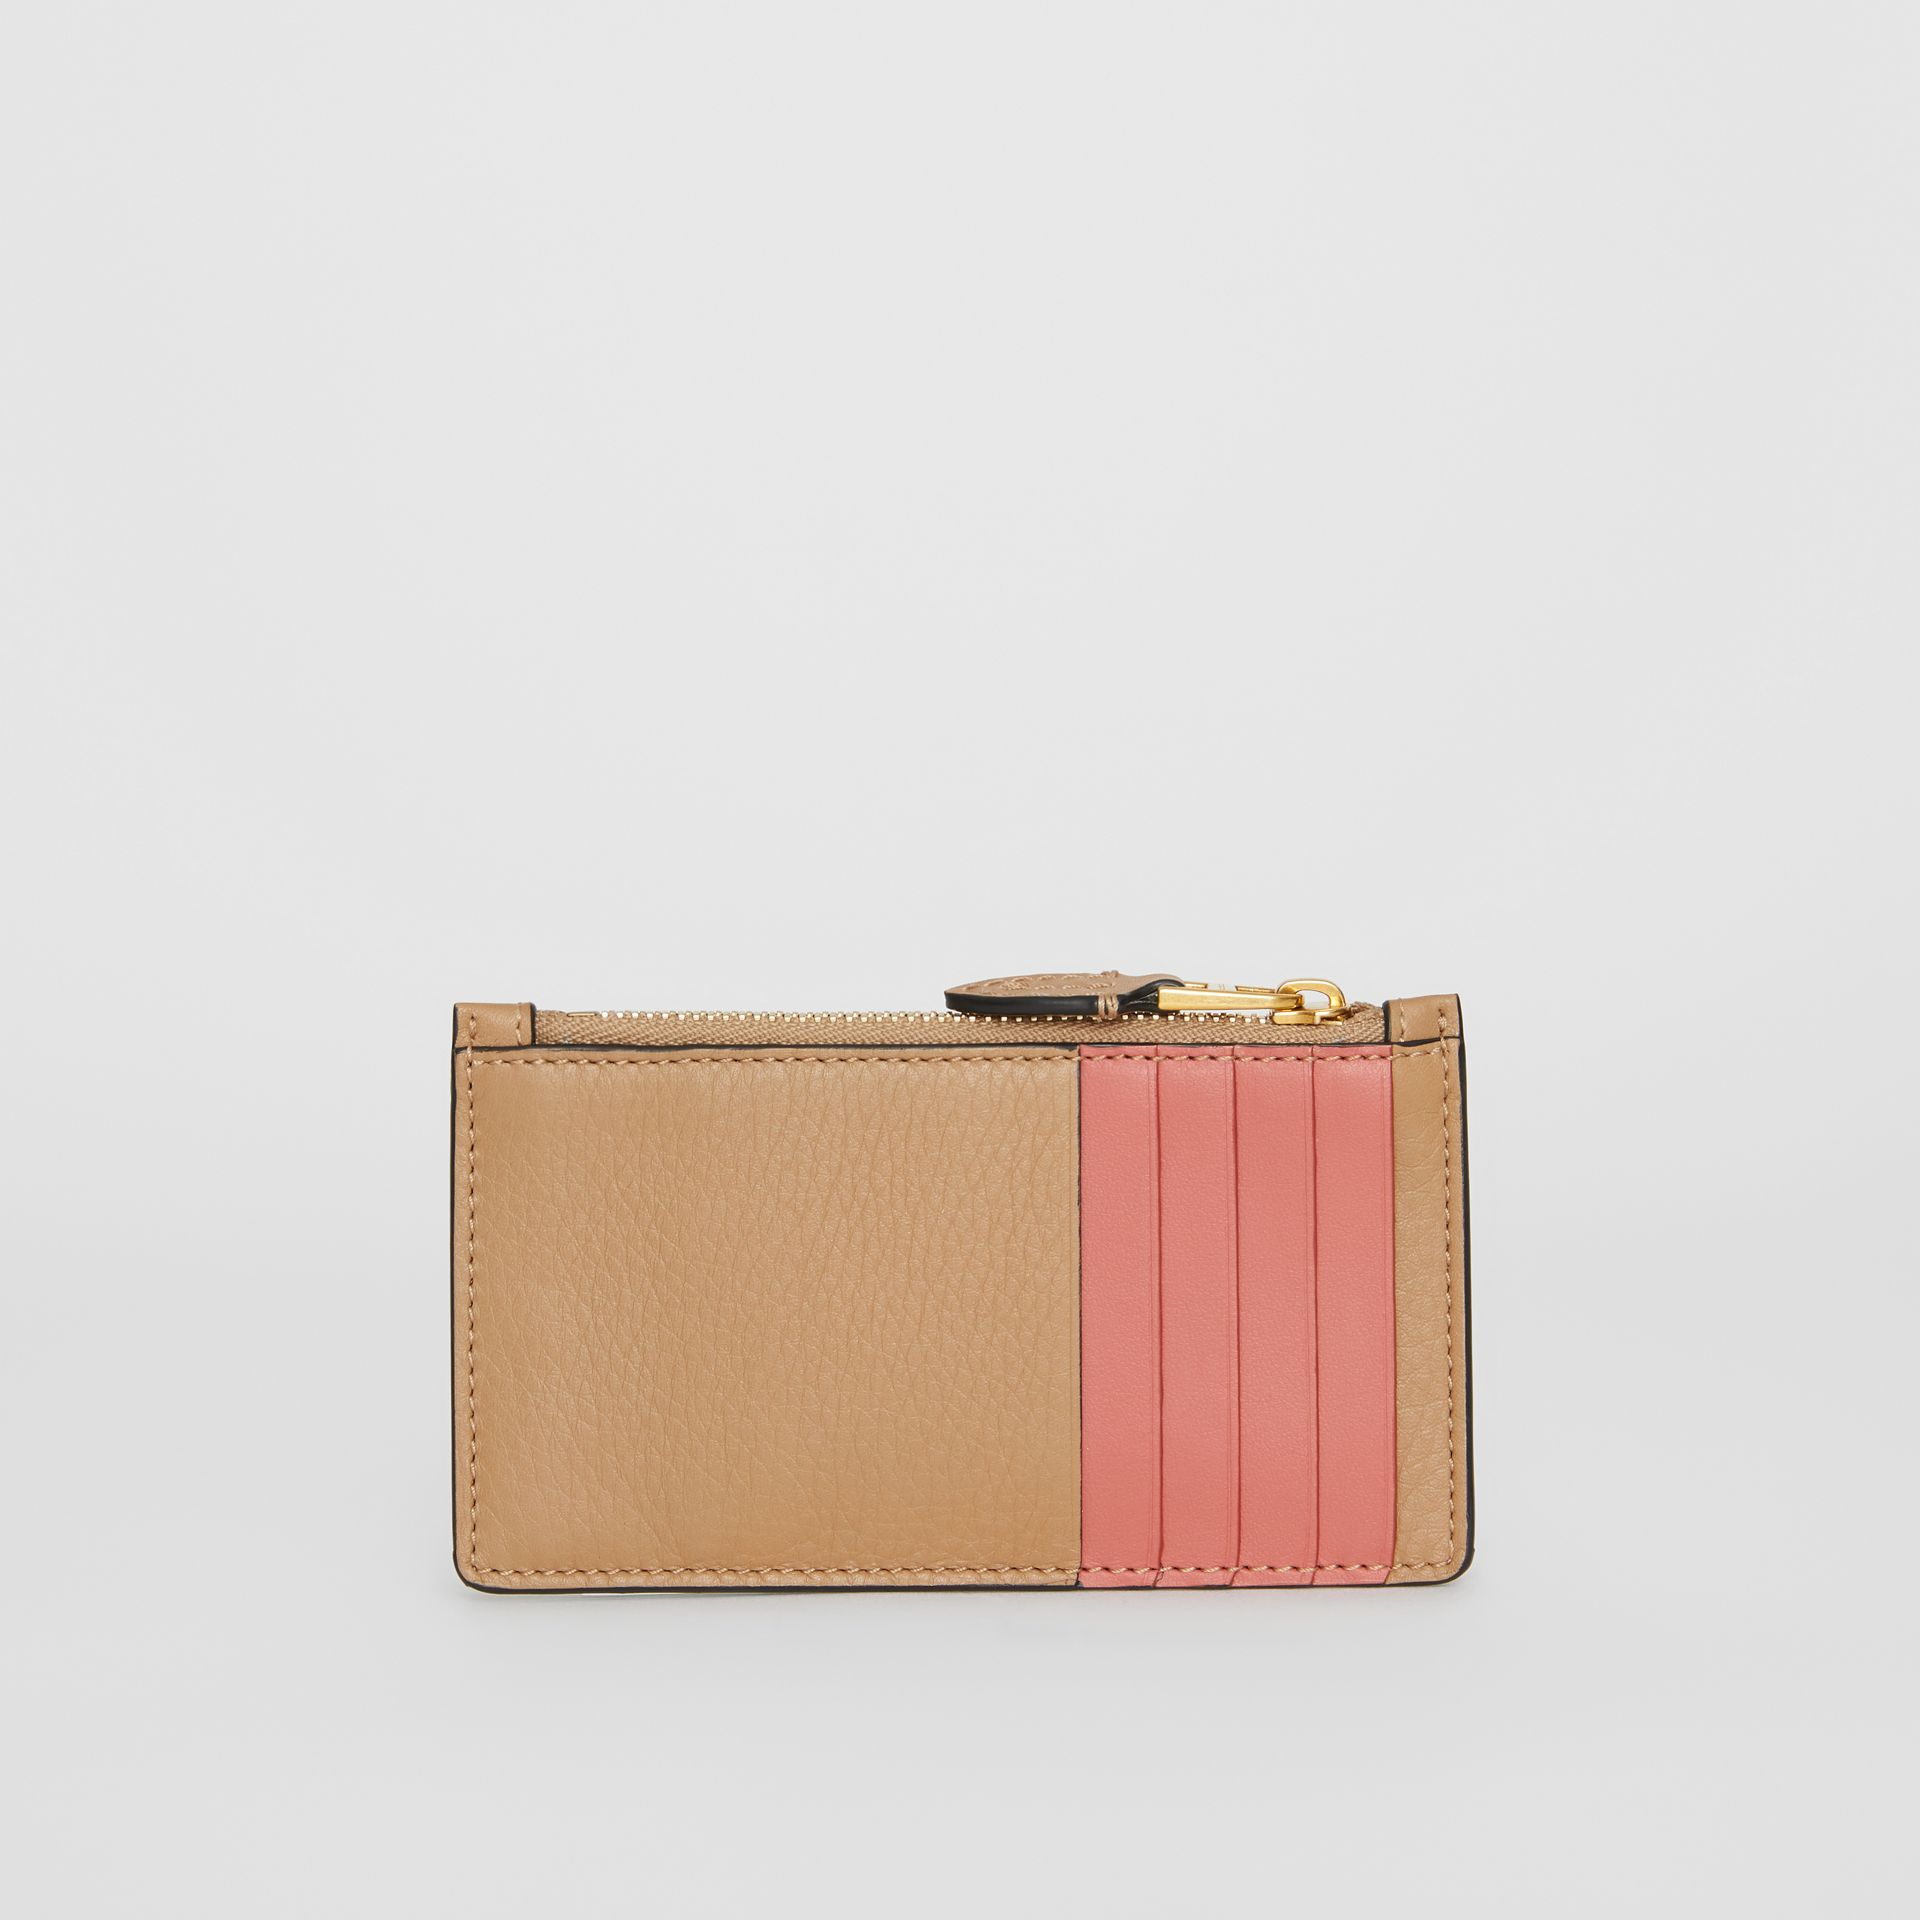 Two-tone Leather Card Case in Light Camel - Women | Burberry Singapore - gallery image 5